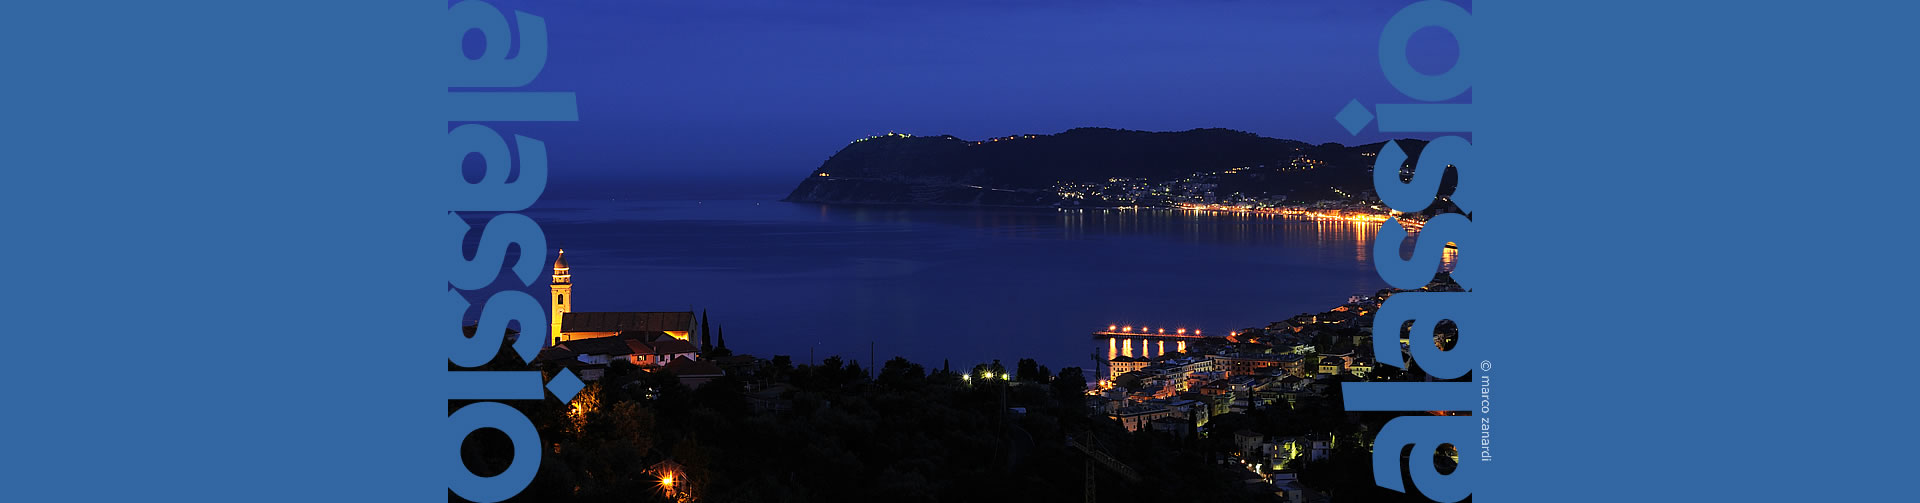 Alassio by night from Solva